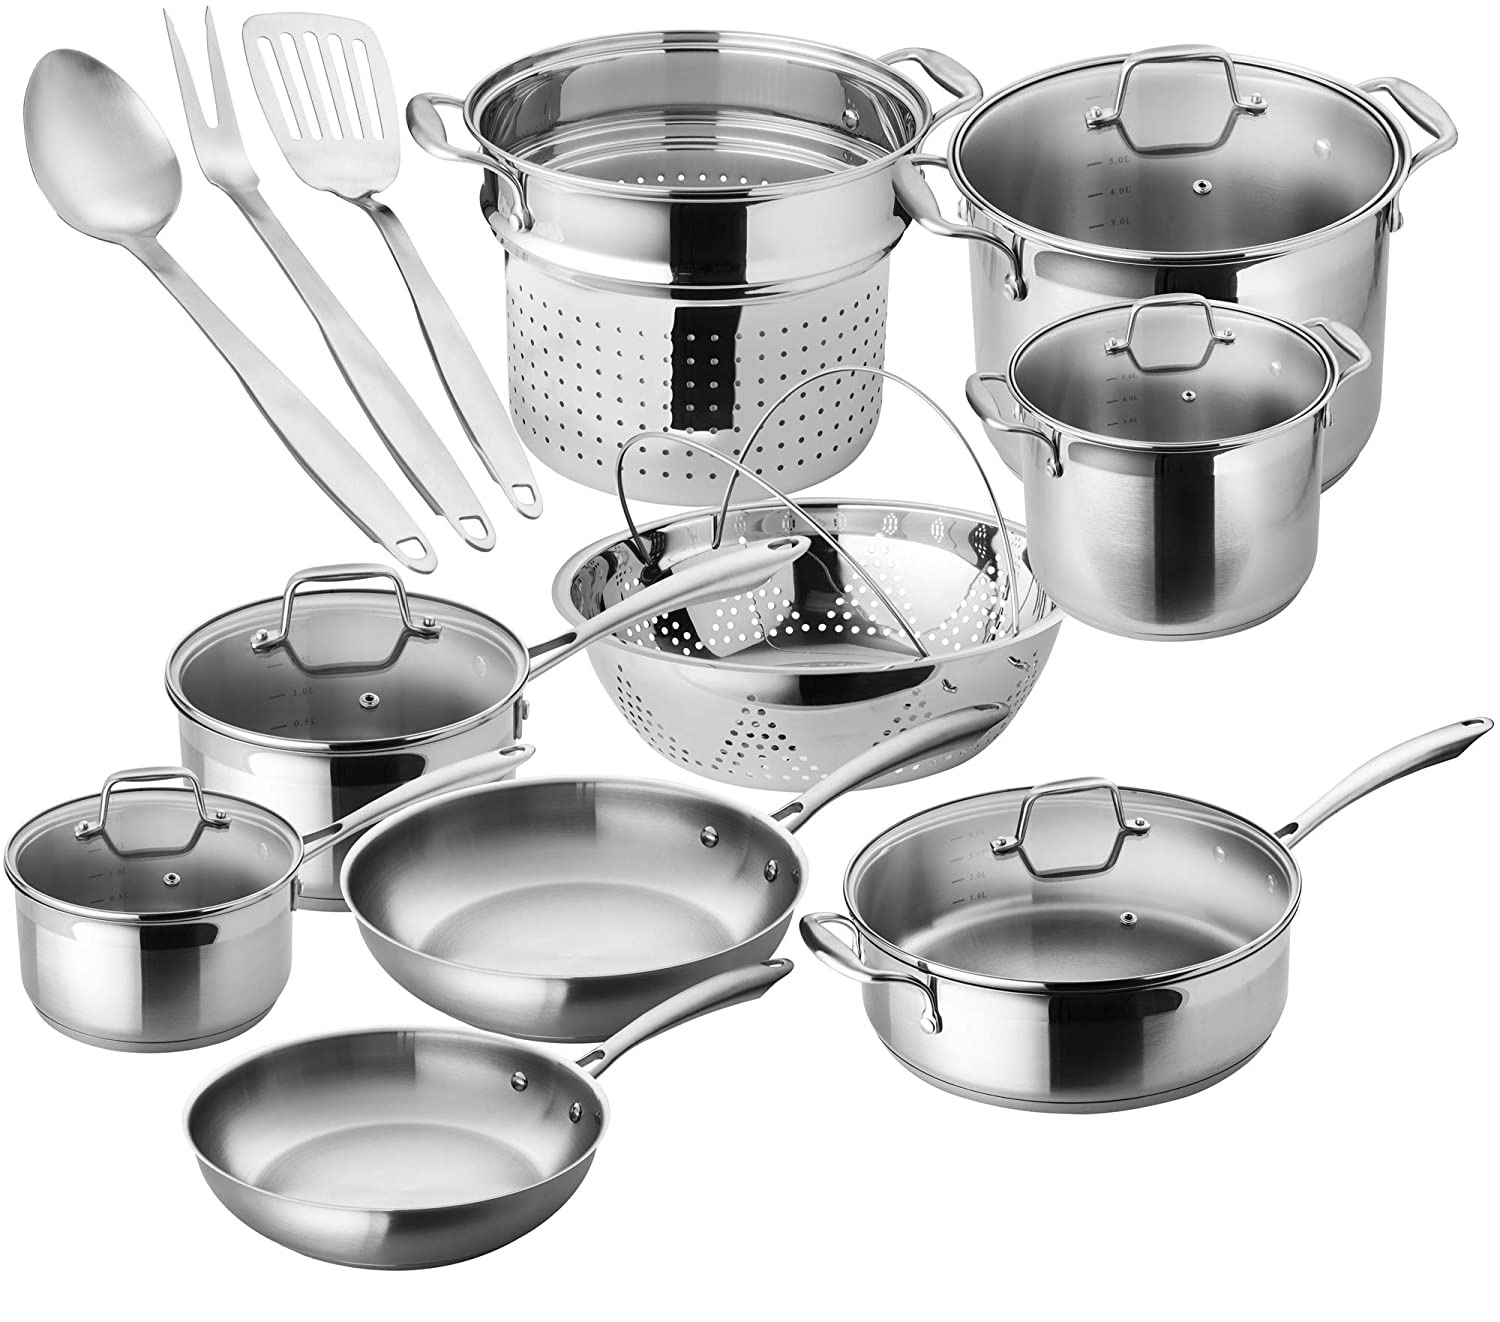 Chef's Star Premium Pots And Pans Set